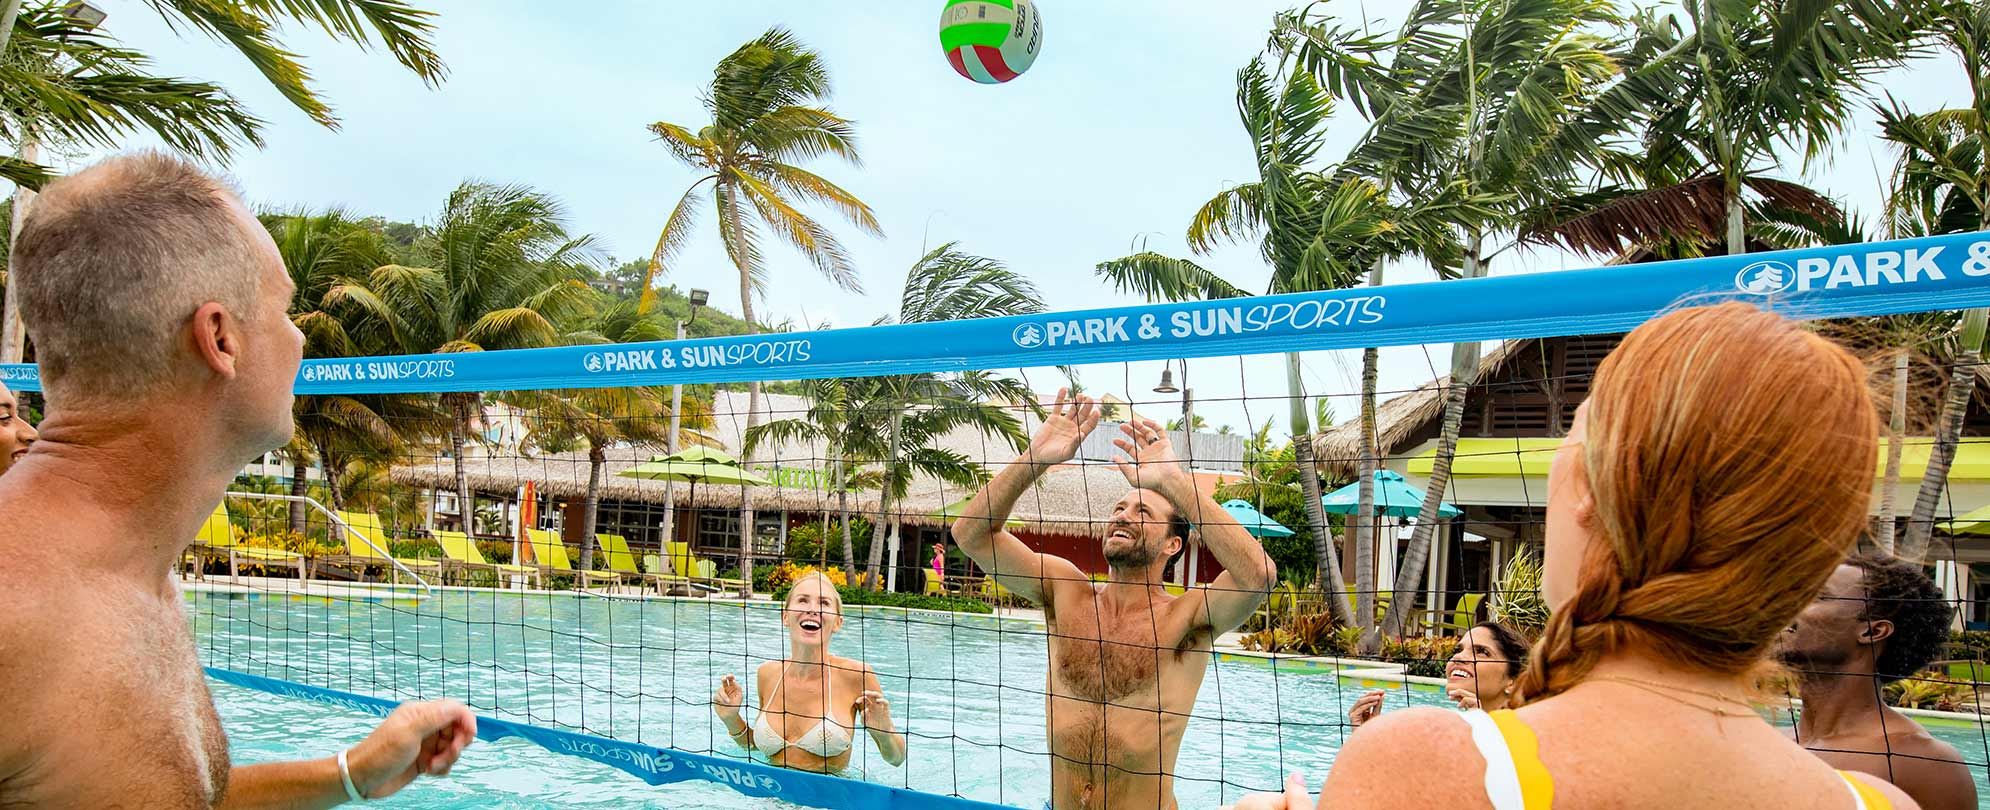 A family playing volleyball in a Margaritaville Vacation Club resort pool.